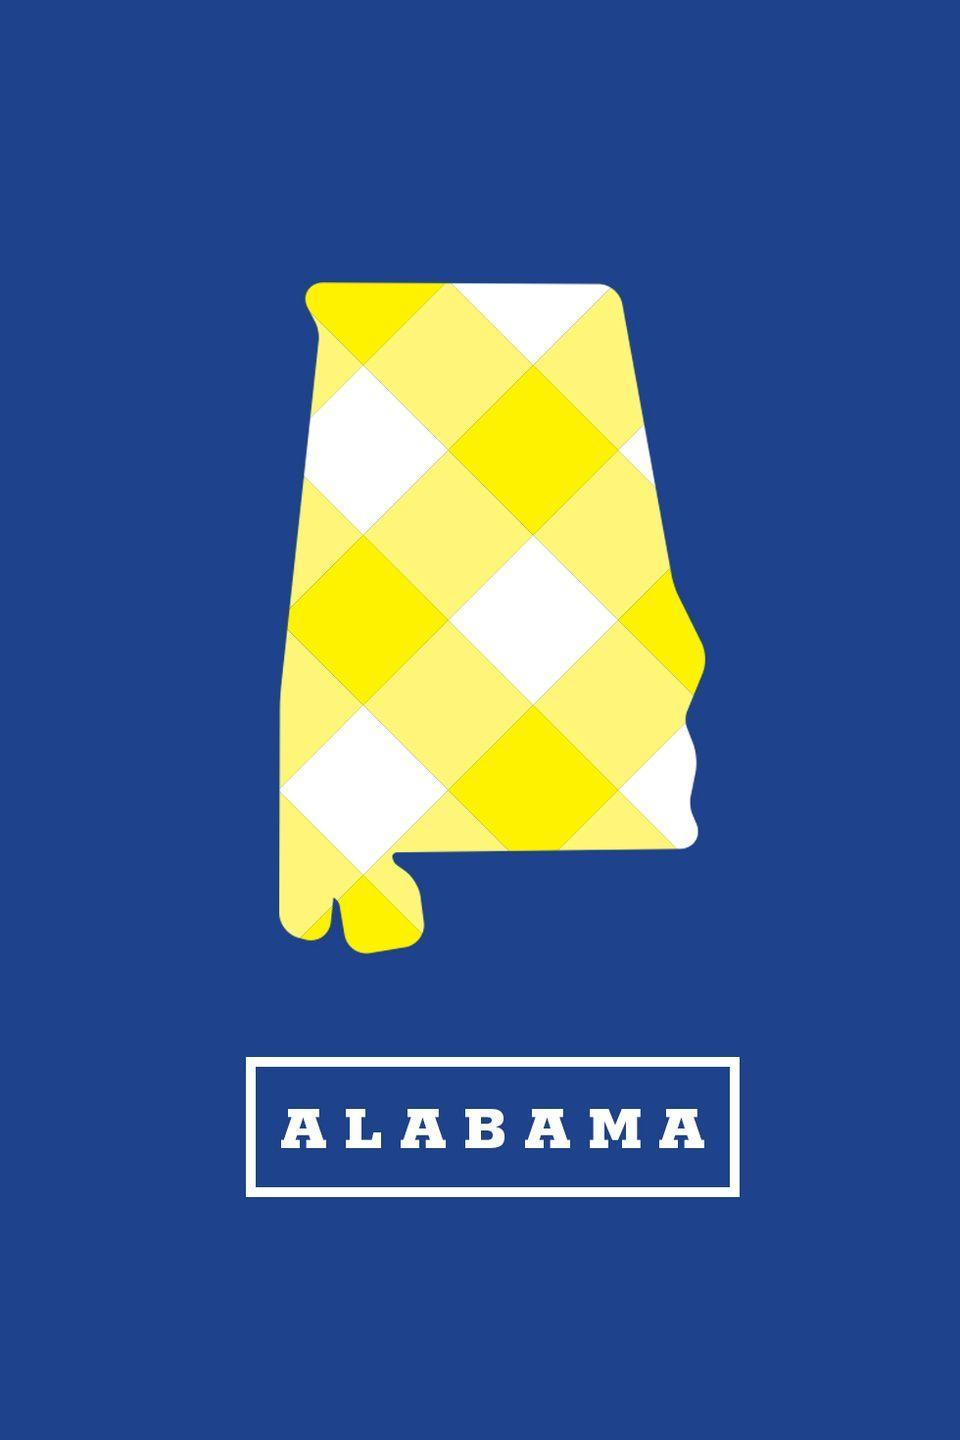 """<p>•You plan everything around college football schedules.</p><p>•You've visited the statue honoring the <a href=""""http://www.atlasobscura.com/articles/boll-weevil-monument-alabama"""" rel=""""nofollow noopener"""" target=""""_blank"""" data-ylk=""""slk:boll weevil"""" class=""""link rapid-noclick-resp"""">boll weevil</a>.</p><p>•You've eaten your barbecue with <a href=""""https://www.countryliving.com/food-drinks/a39145/you-need-to-know-about-alabama-white-sauce/"""" rel=""""nofollow noopener"""" target=""""_blank"""" data-ylk=""""slk:white sauce"""" class=""""link rapid-noclick-resp"""">white sauce</a> at some point.</p>"""